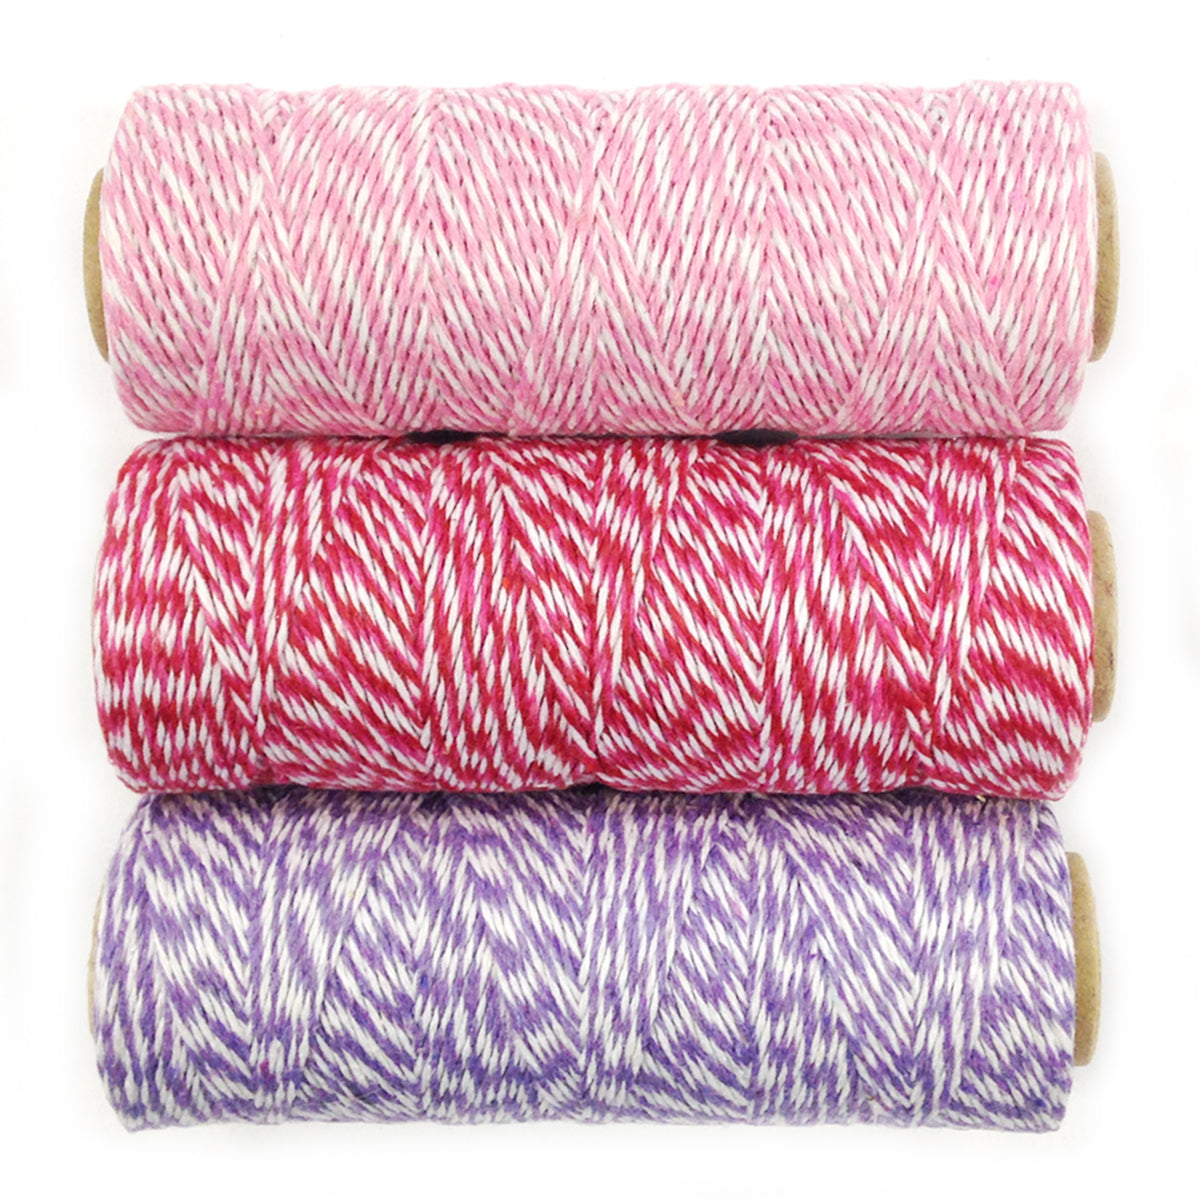 Wrapables Cotton Baker's Twine 4ply 330 Yards (Set of 3 Spools x 110 Yards)